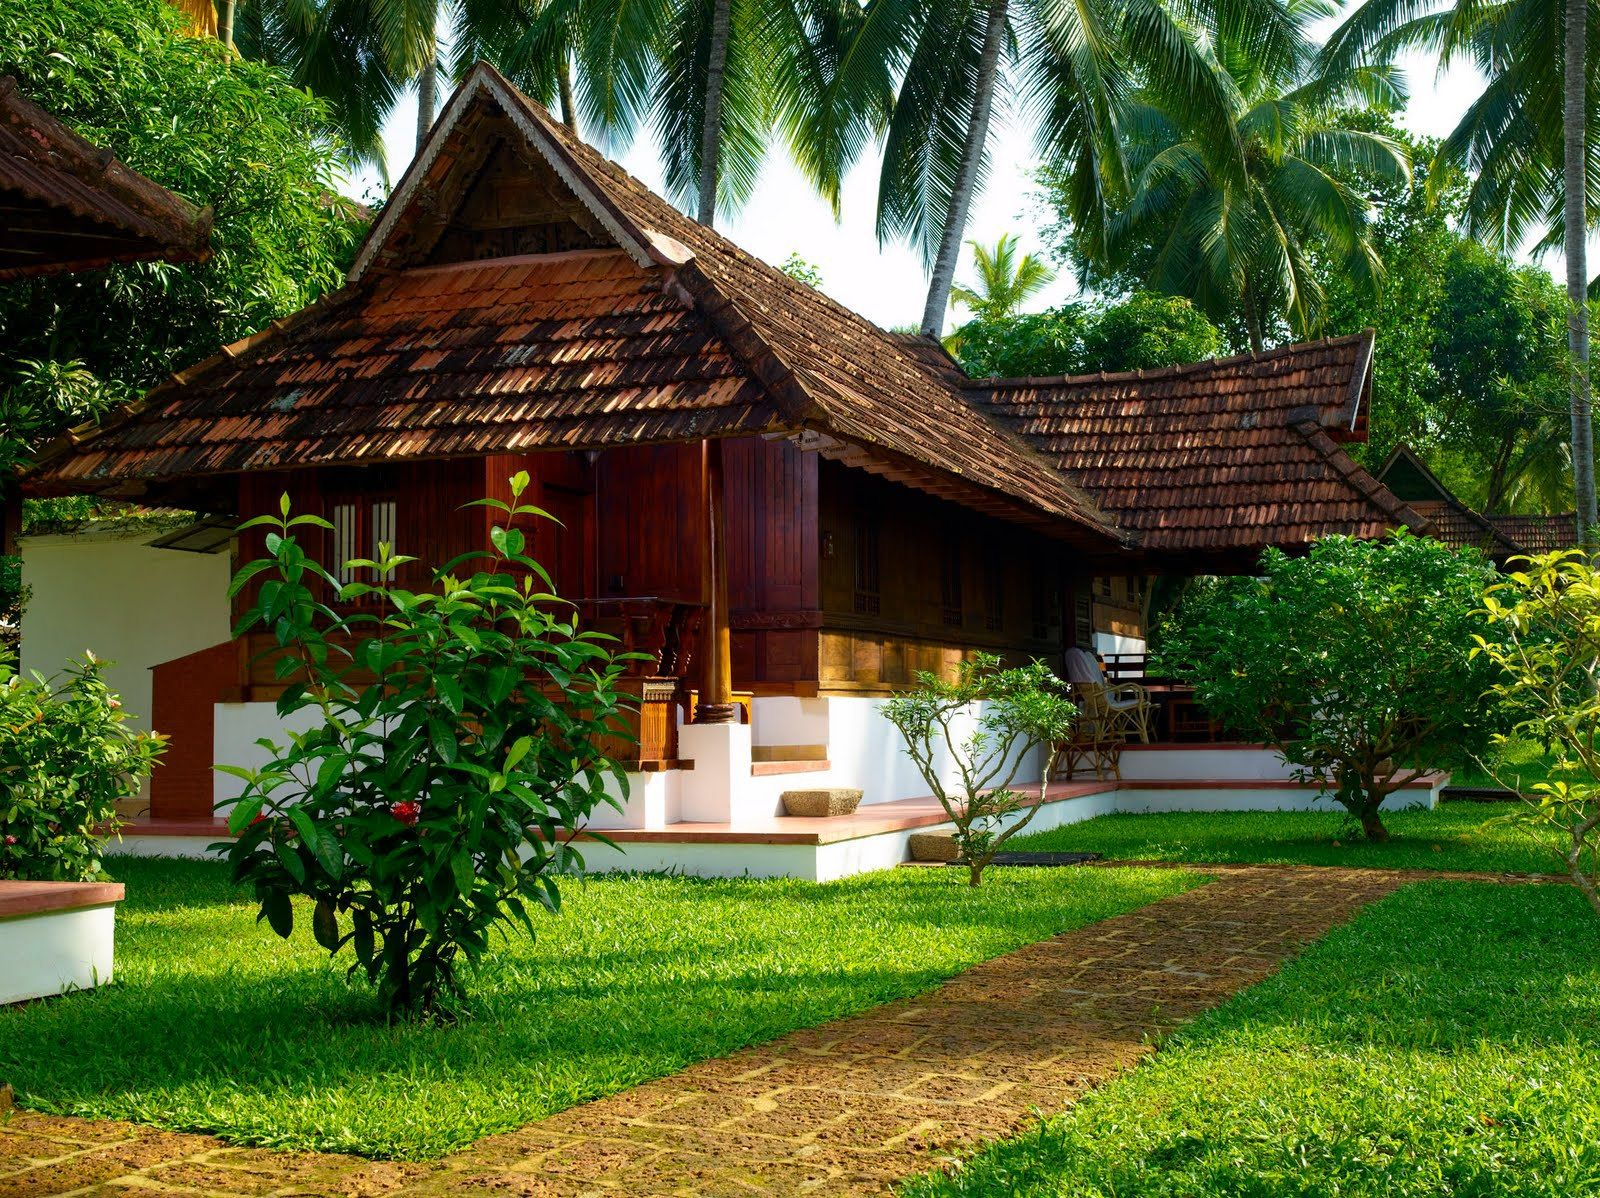 Beauty of traditional Kerala home is so nostalgic. Isn't it